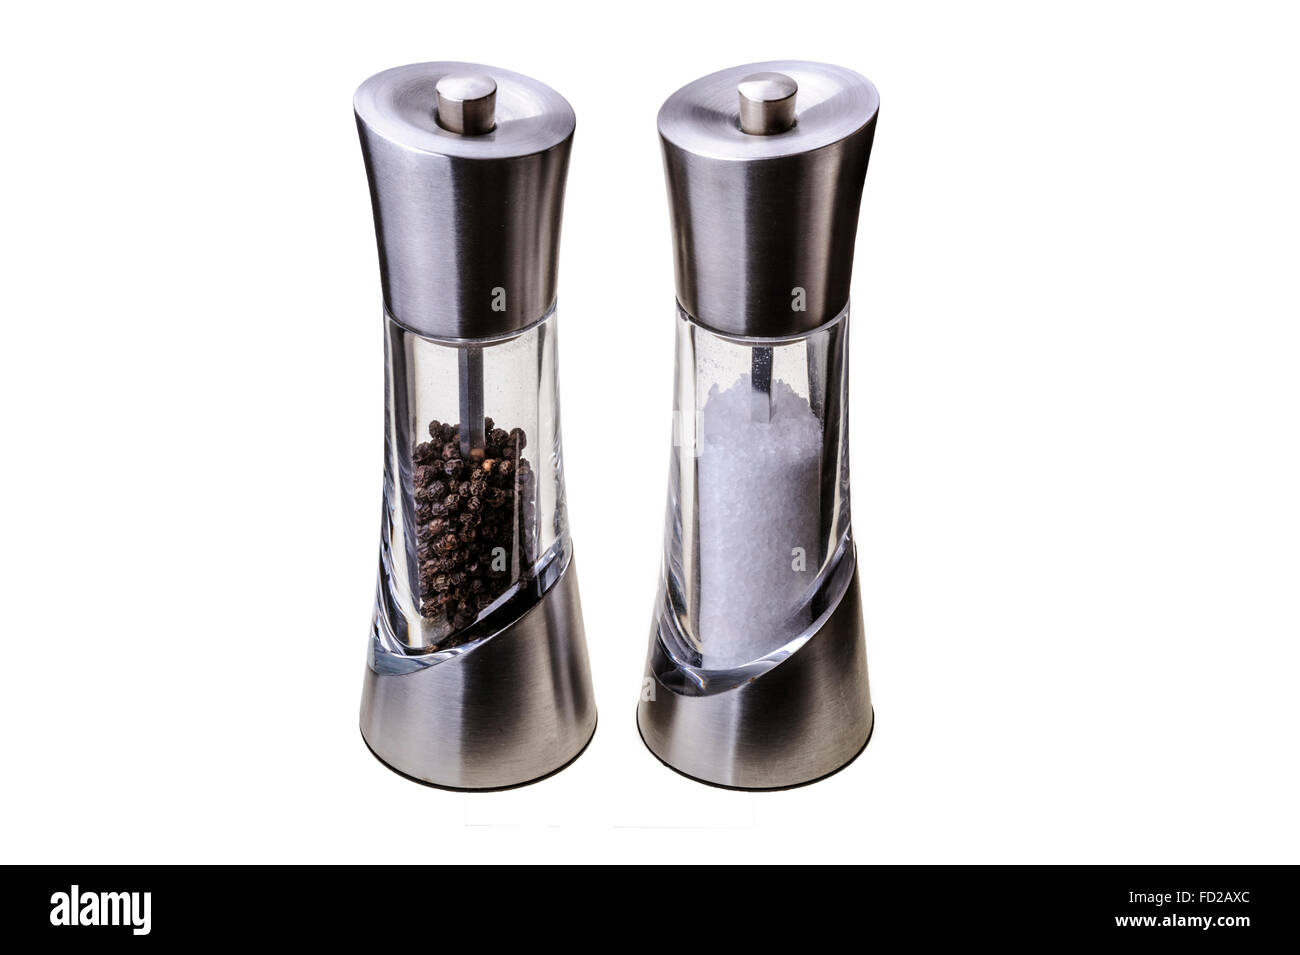 Stainless steel and glass salt and pepper mill's. - Stock Image